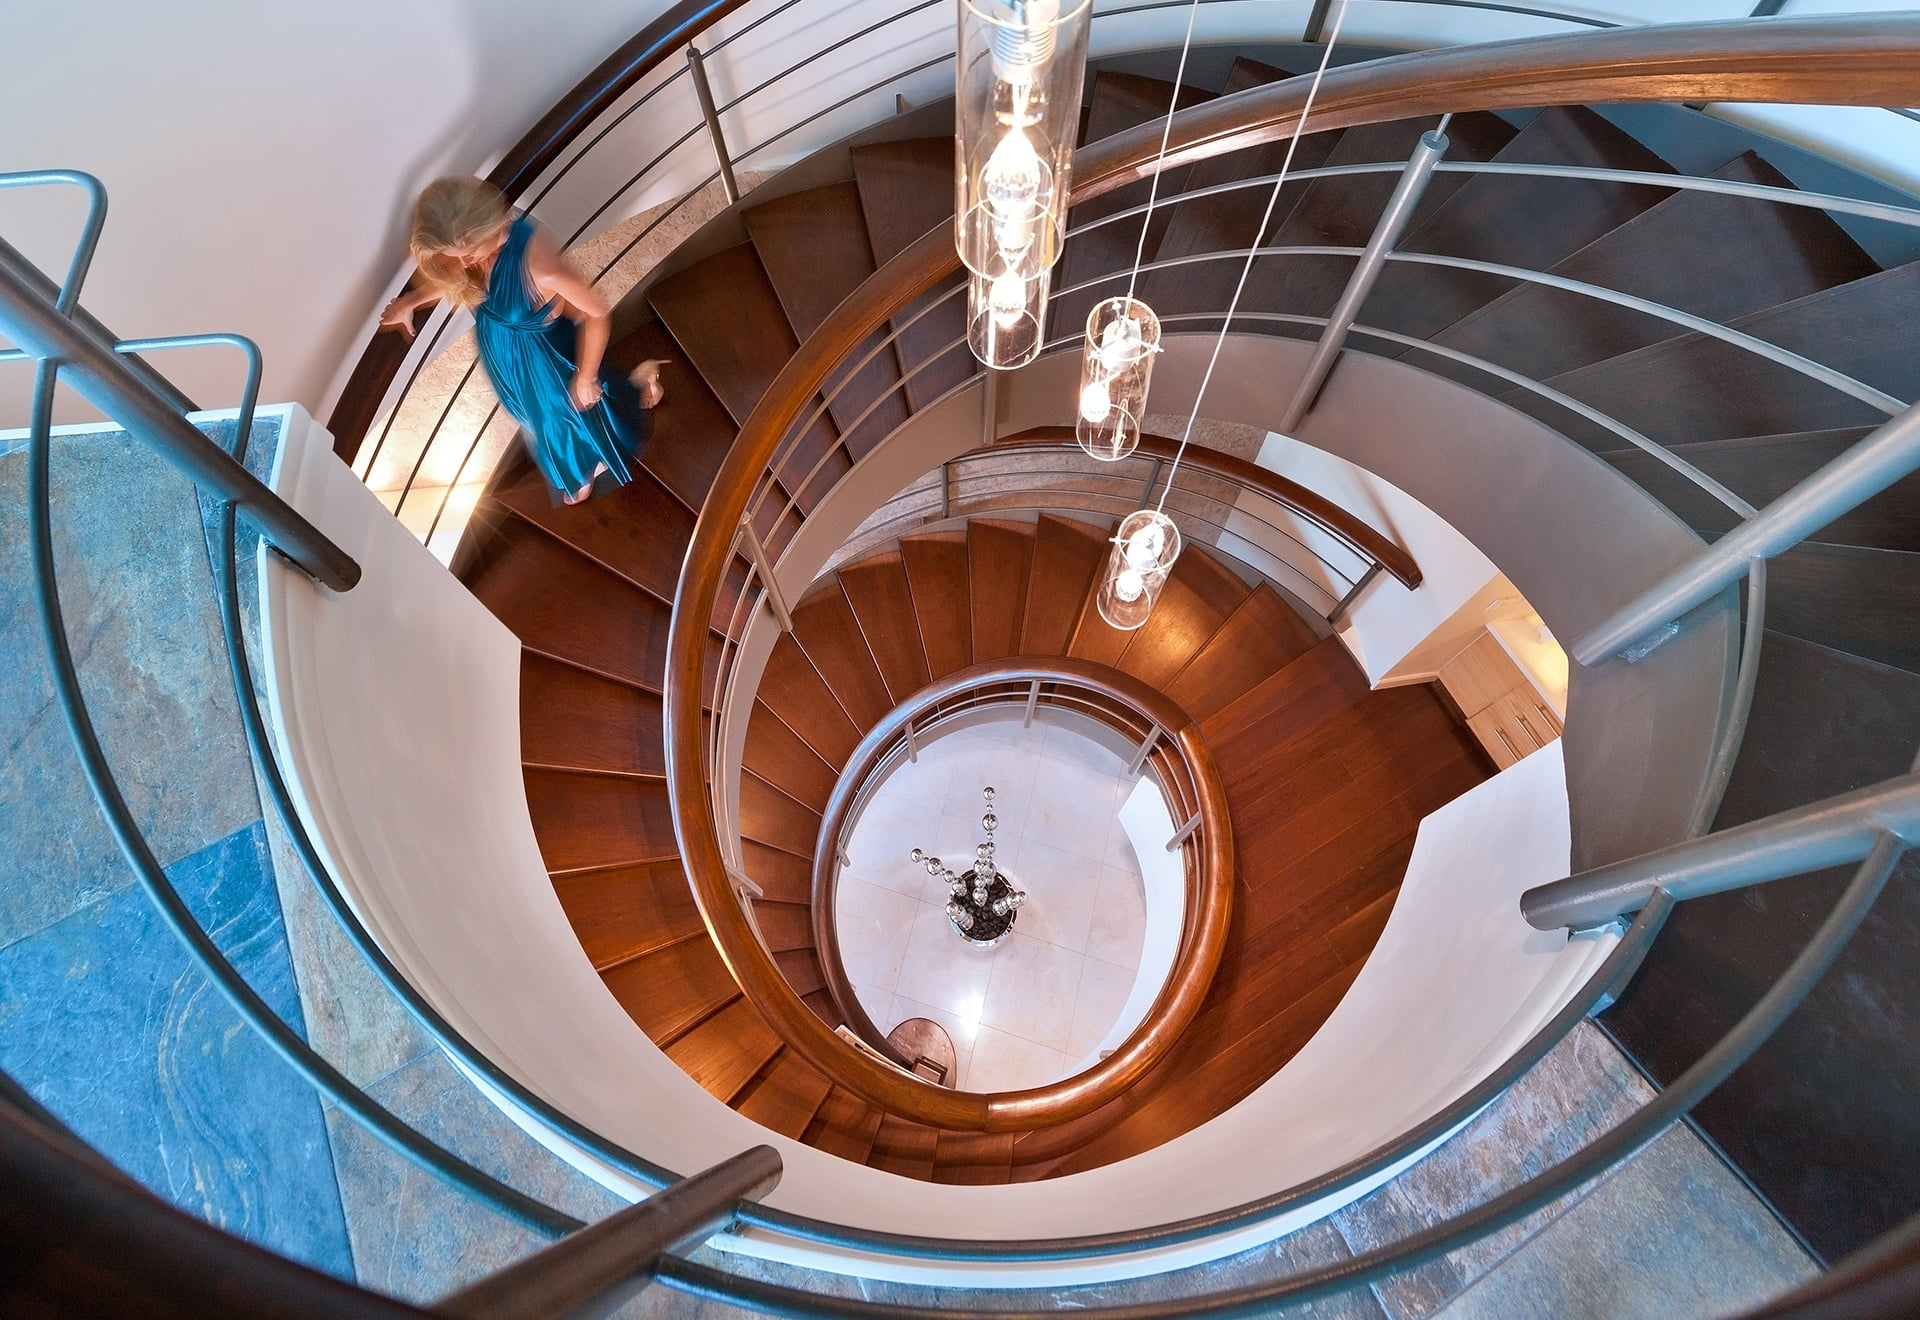 THE-RENAISSANCE-SHORELANDS-TRINIDAD-APR-2014-STAIRWELL-LOOKING-DOWN-WITH-TALENT